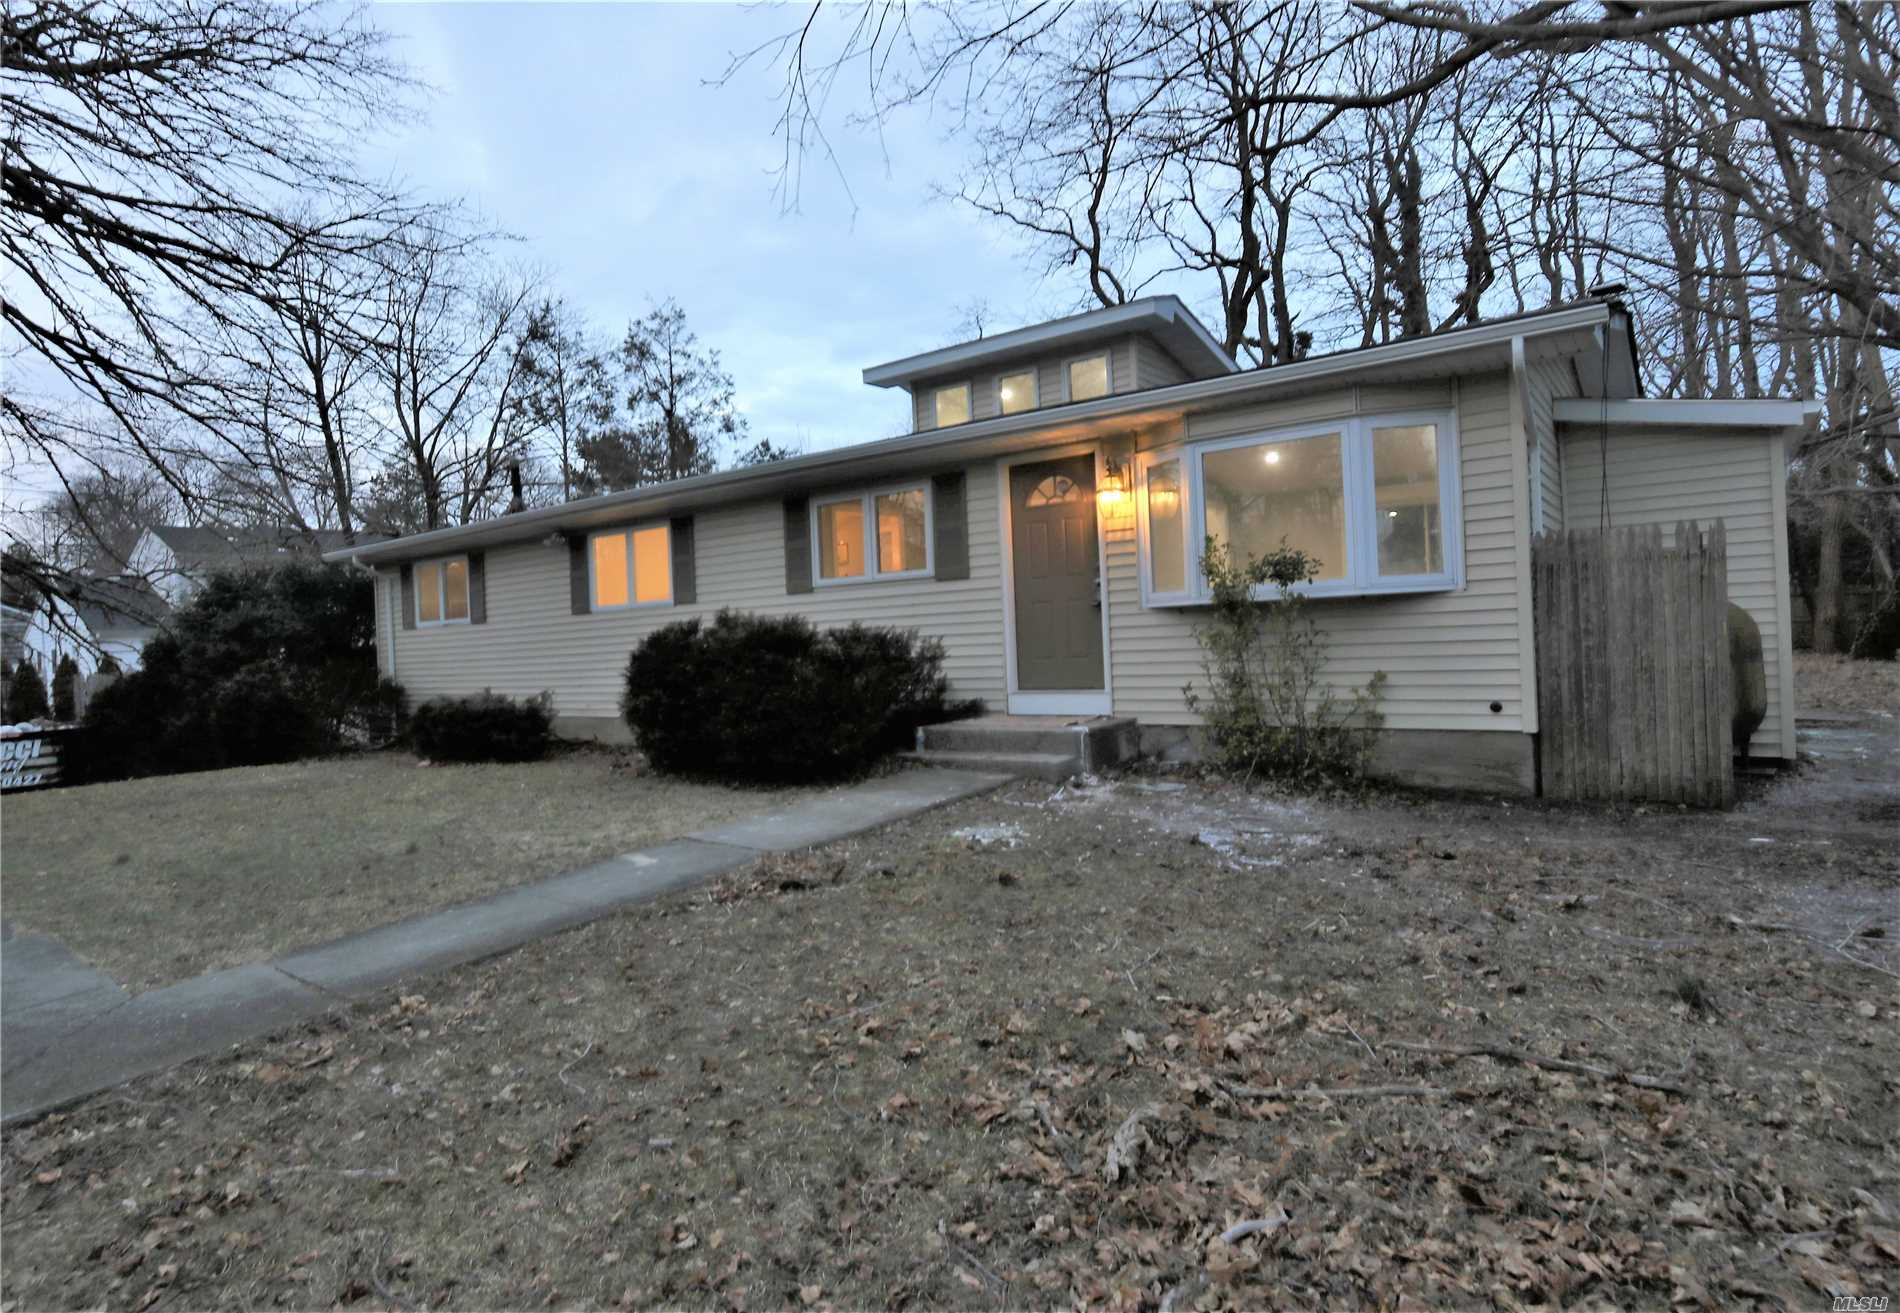 DIAMOND RENOVATED 3BR 2BTH RANCH W/WALK OUT FULL FINISHED BSMT. GREAT MOTHER /DAUGHTER OR INCOME EARNING POTENTIAL.FEATURES CATHEDRAL CEILINGS, WOOD FLOORS, BRAND NEW KITCHENS & BTHS.QUARTZITE COUNTERS, NEW CARPETS, & FRESHLY PAINTED .NICE LARGE YARD-WONT LAST.